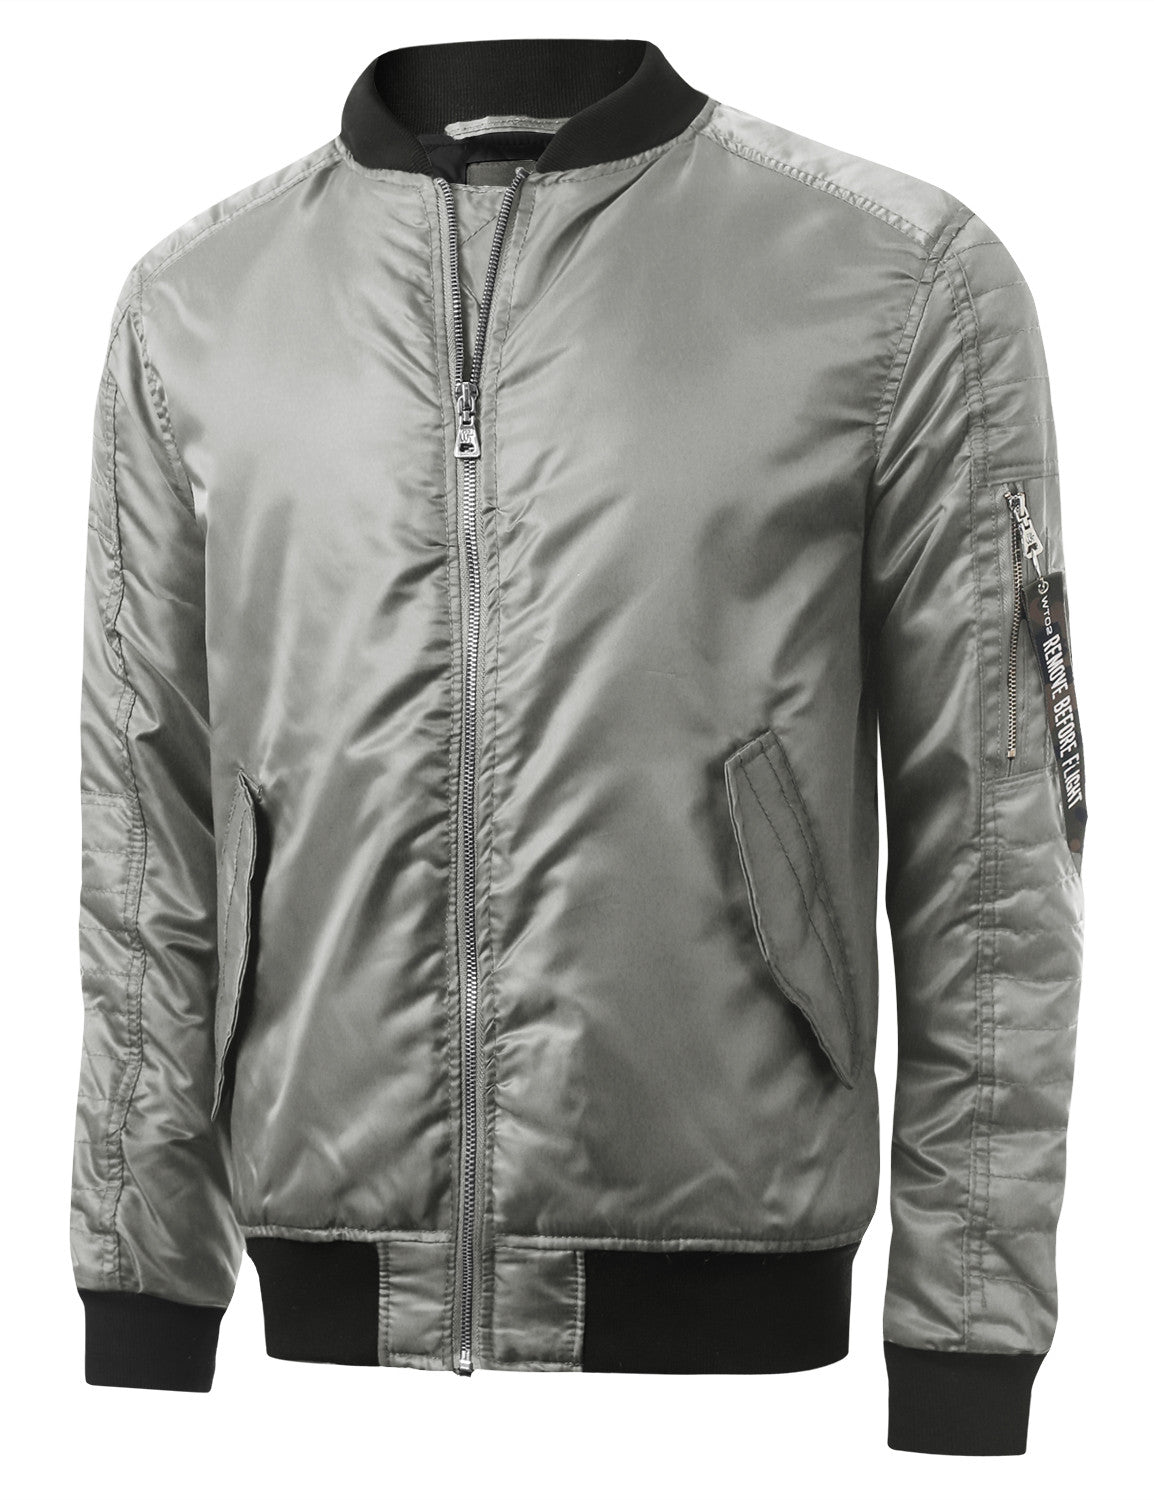 SILVER Basic Bomber Flight Jacket w/ Zippers - URBANCREWS